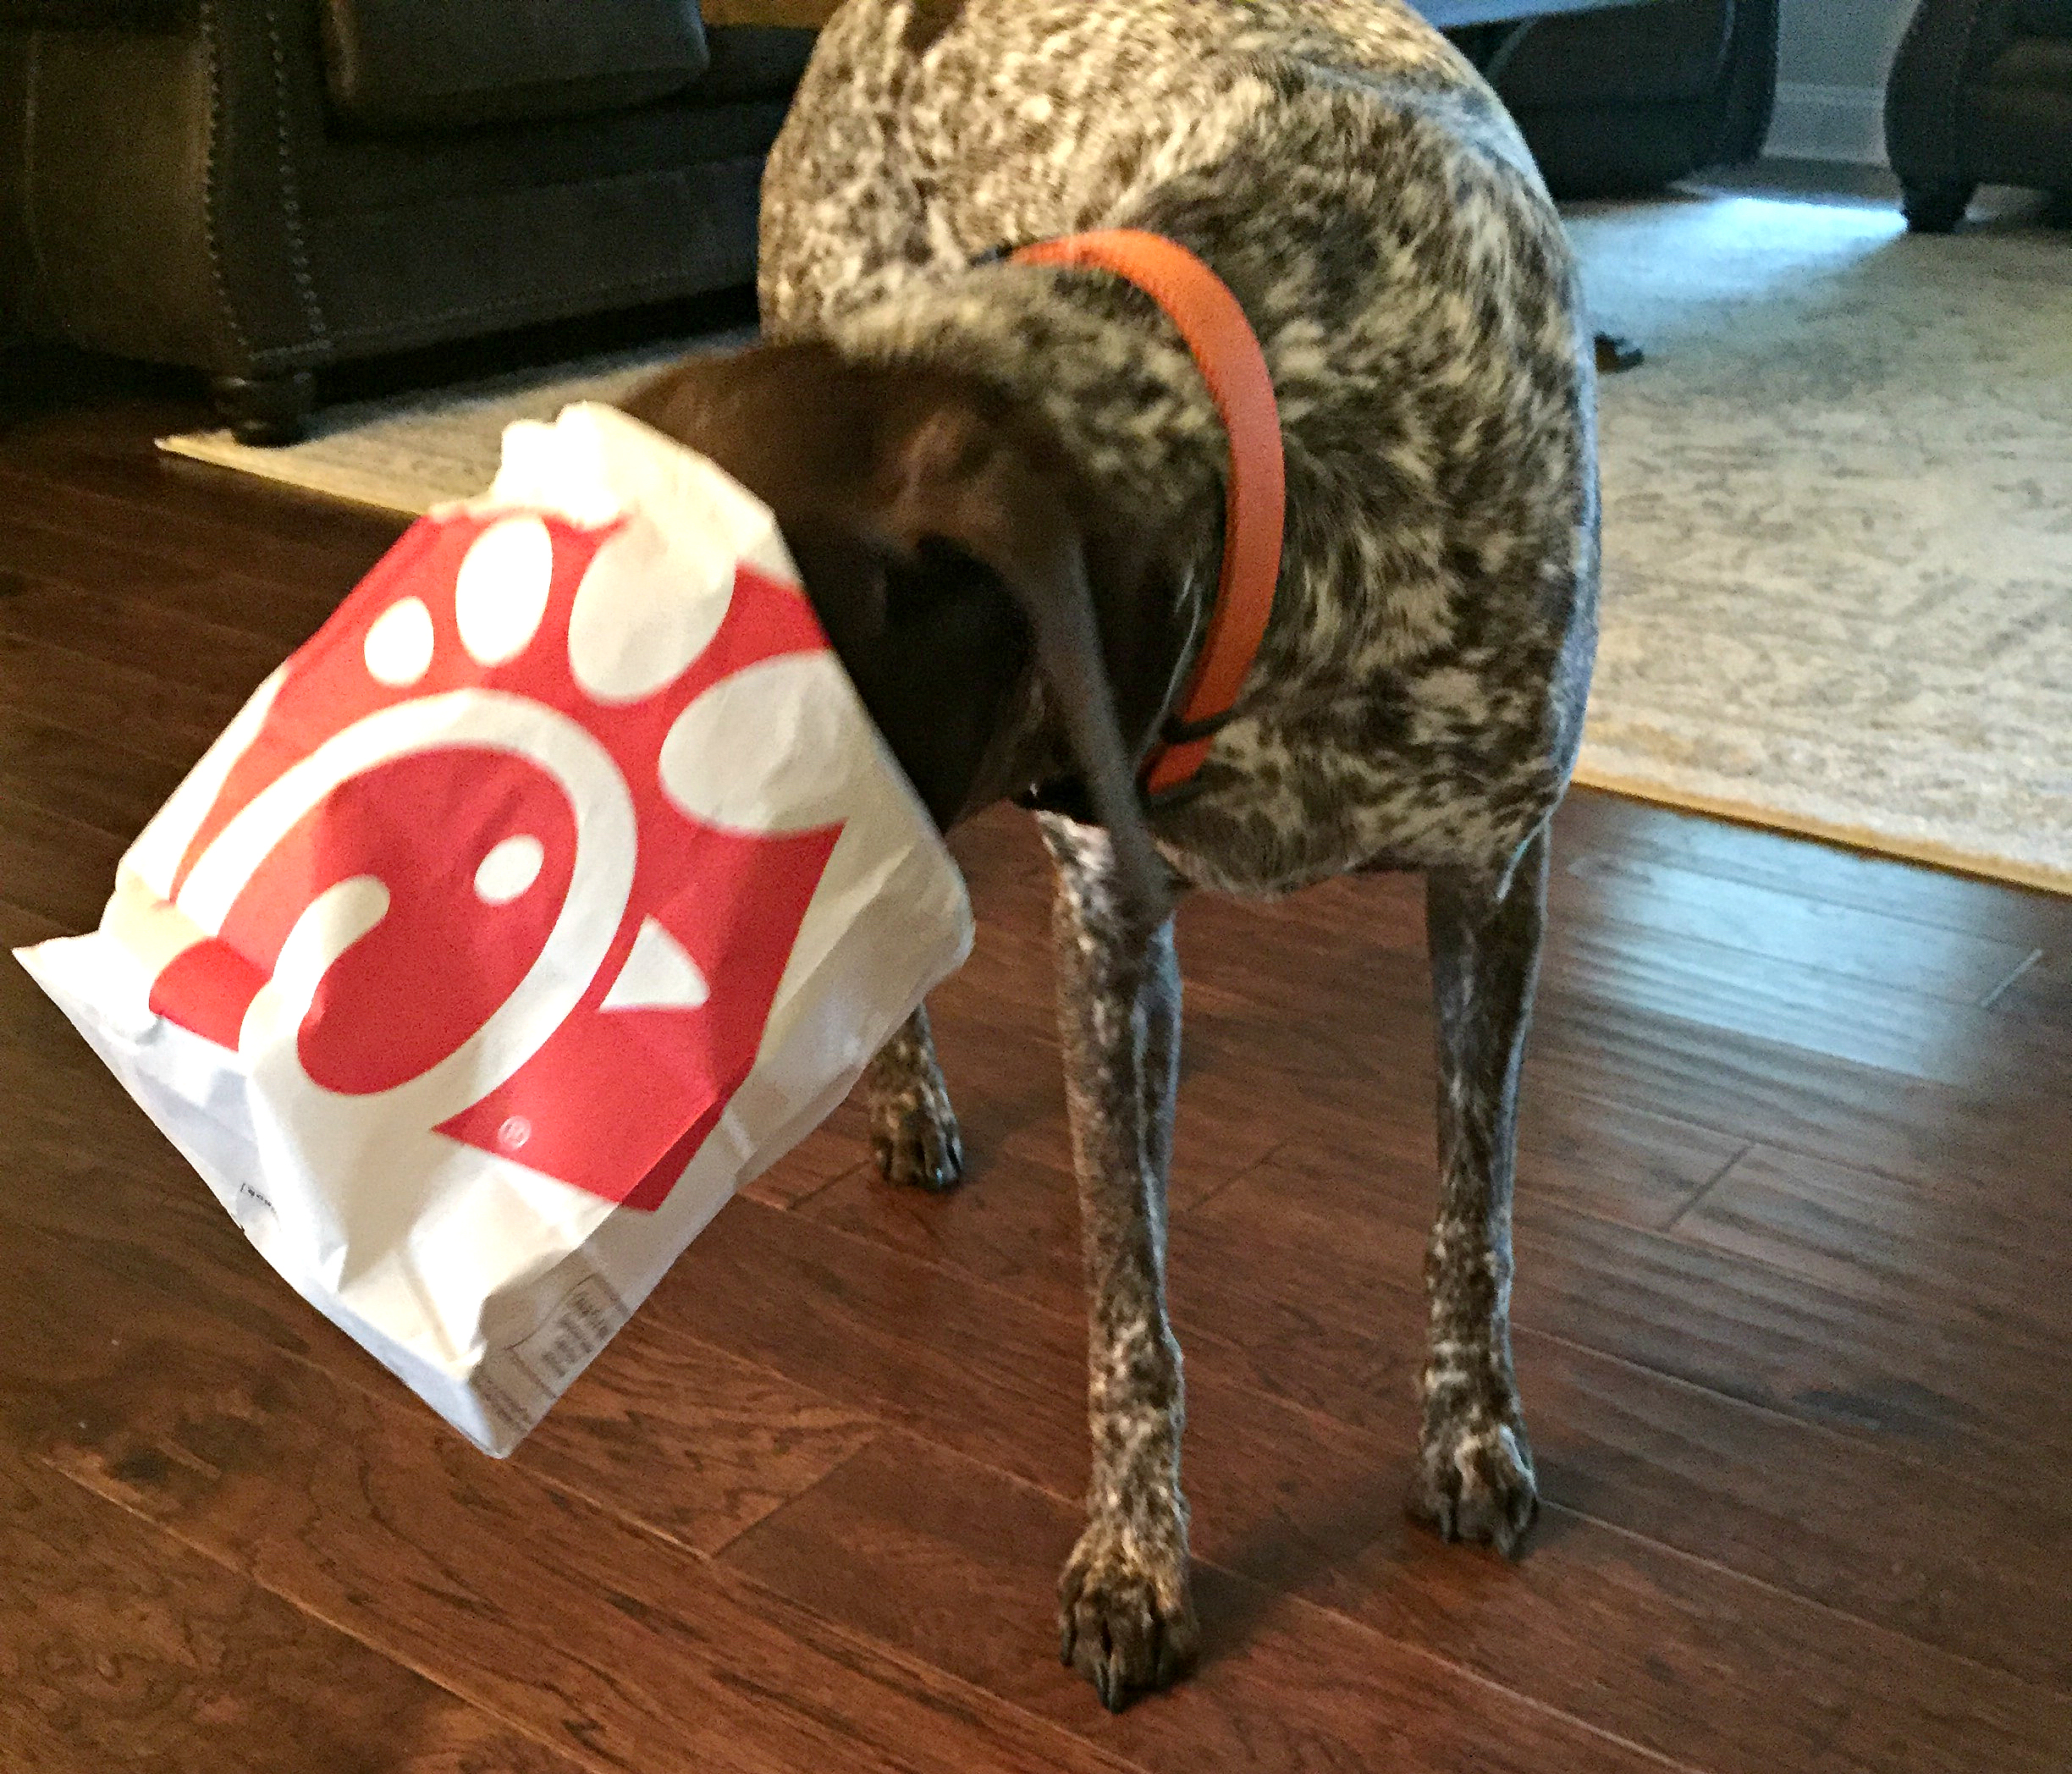 chick-fil-a is one of the best fast food chains out there – My dog is a fan, too!